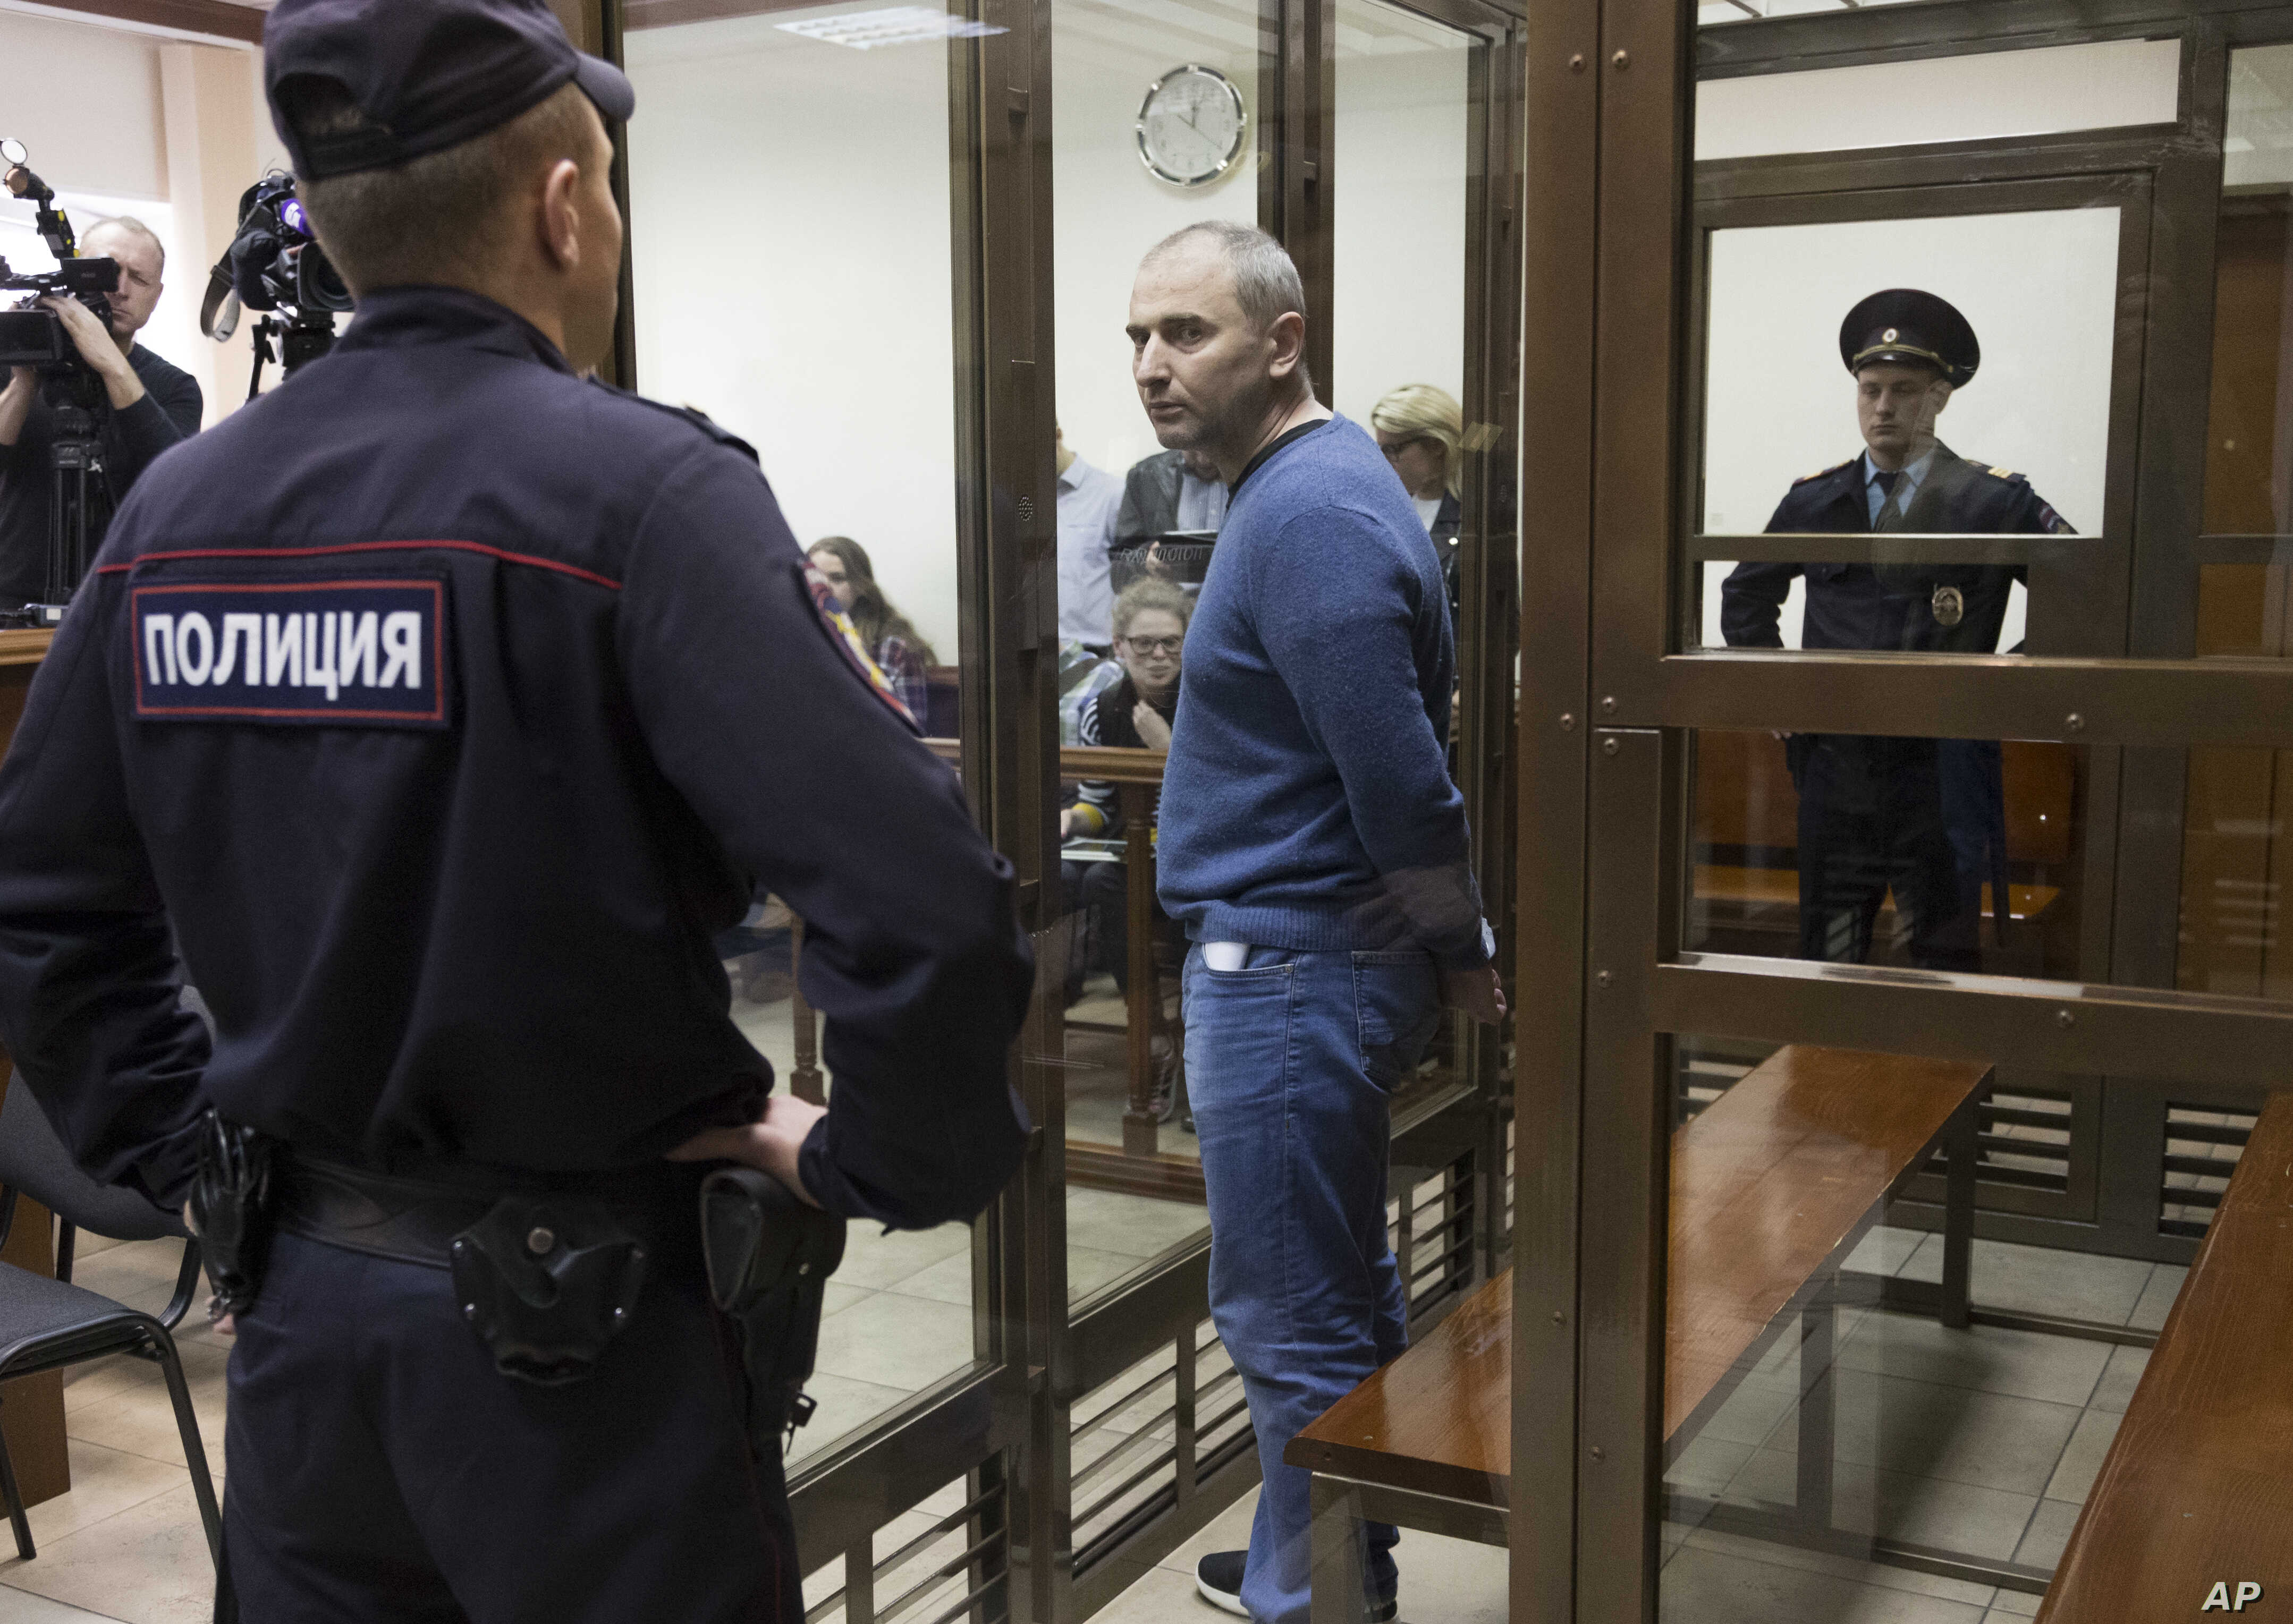 Convicted Russian Hacker Anikeyev Released From Prison | Voice of